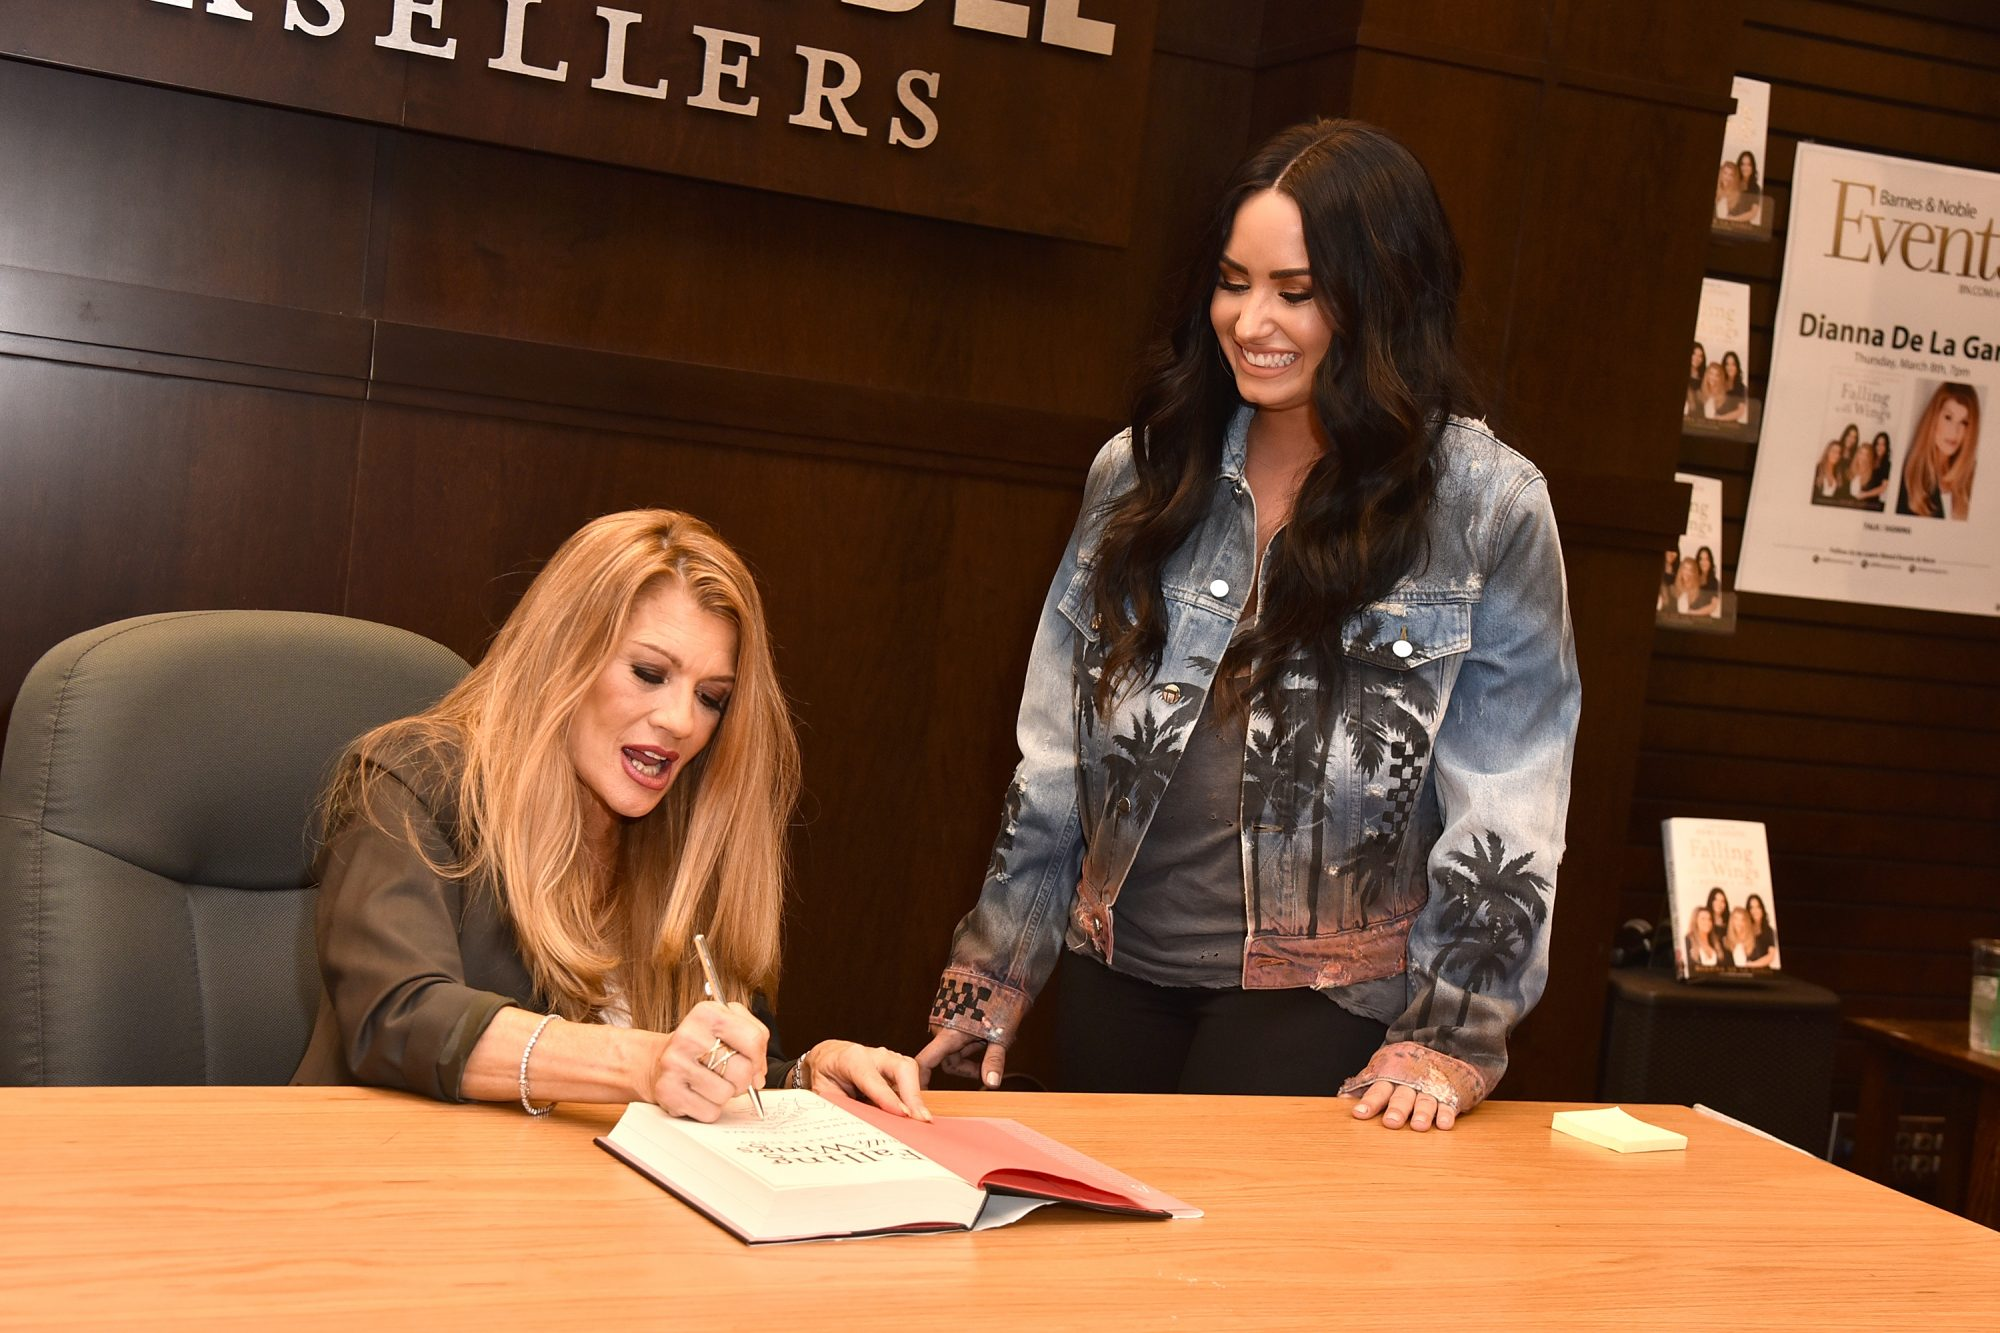 Dianna De La Garza Signs Copies Of Her New Book 'Falling with Wings'